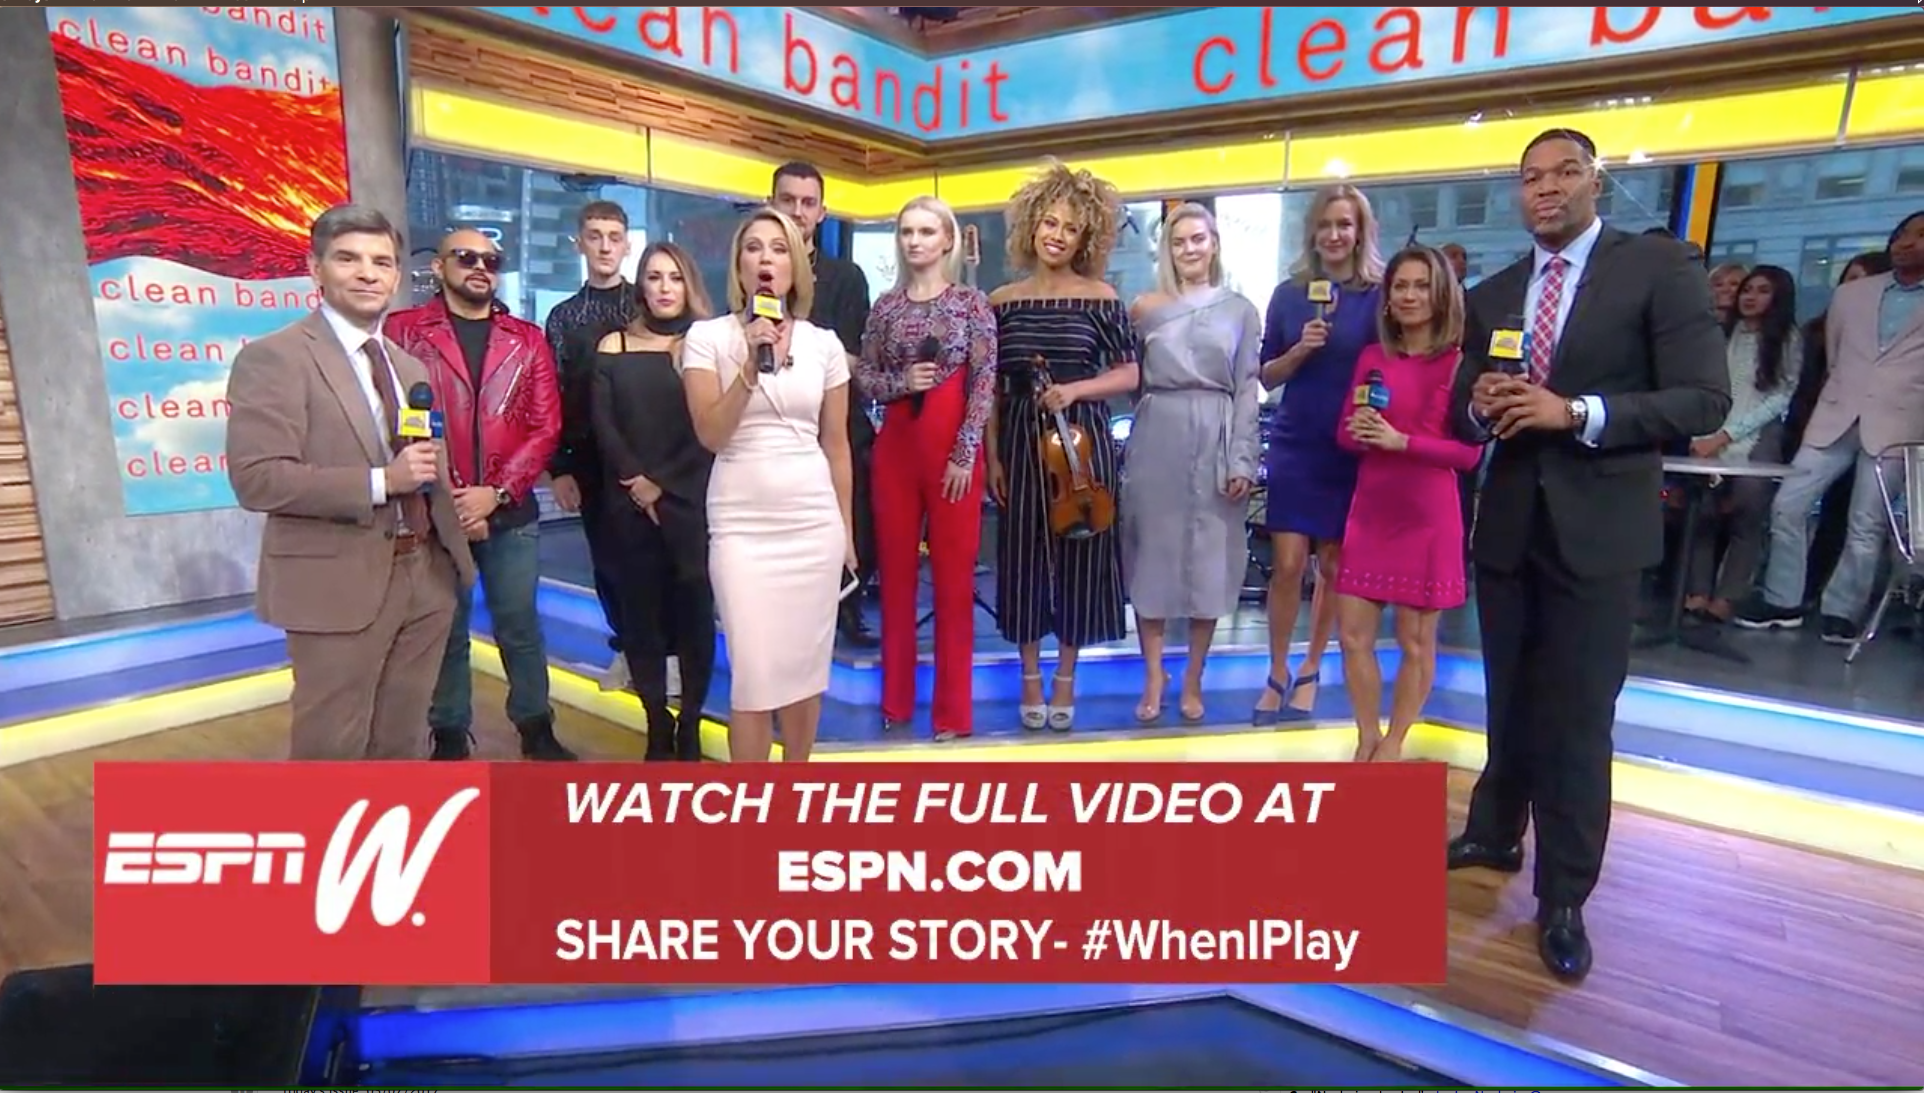 Earlier this month, the cast of ABC's Good Morning America helped promote espnW's #WhenIPlay video.